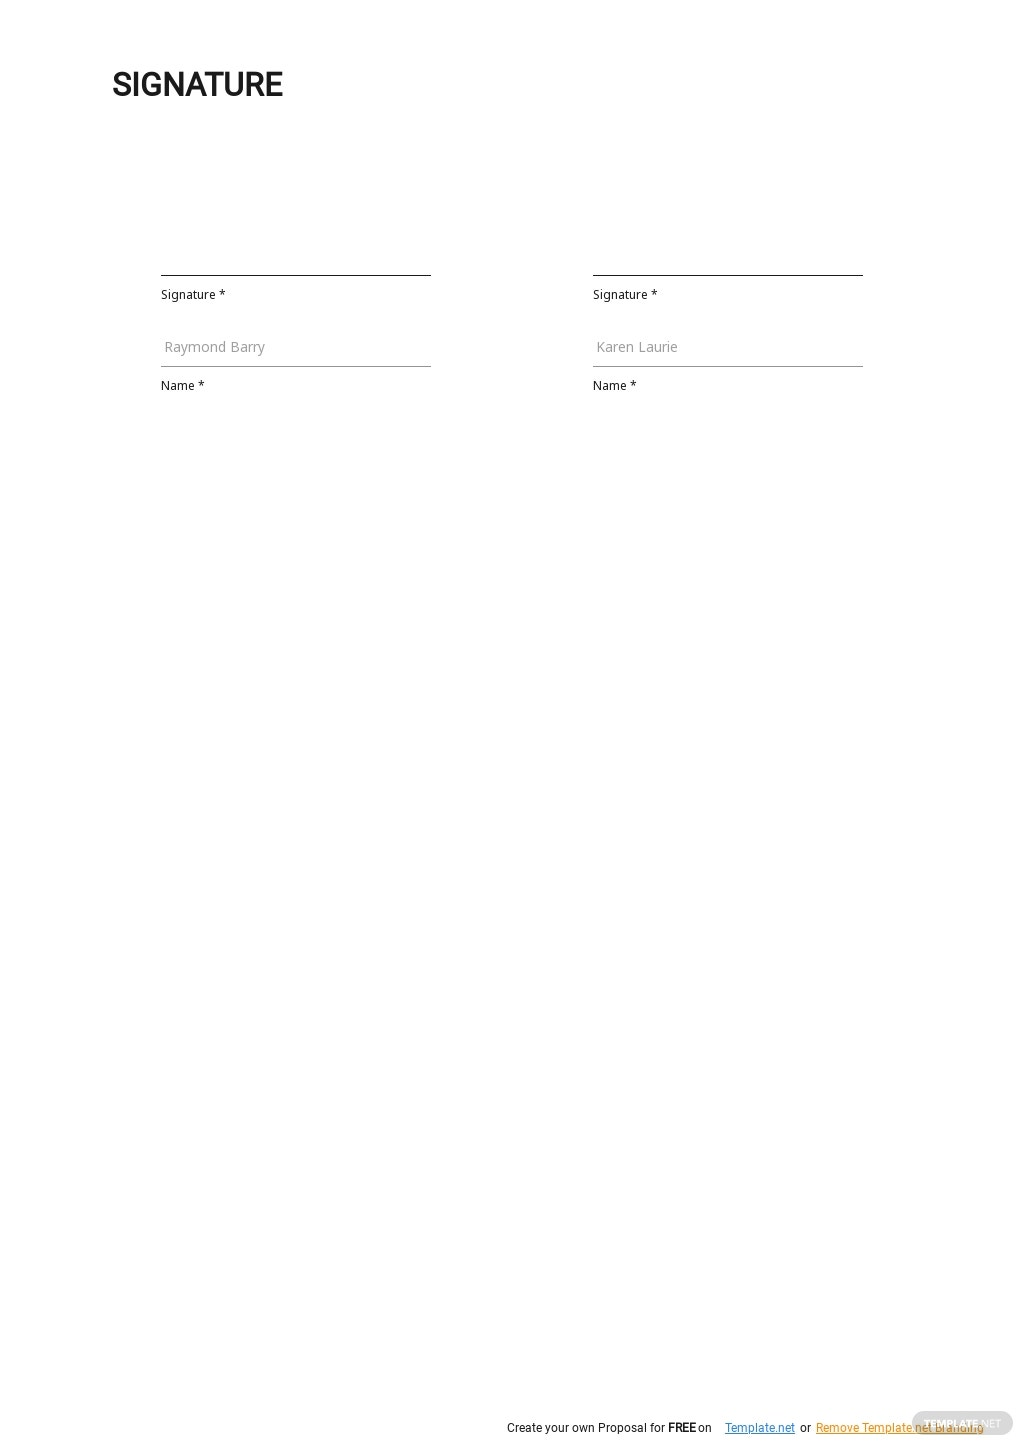 Simple Business Purchase Agreement Template 2.jpe